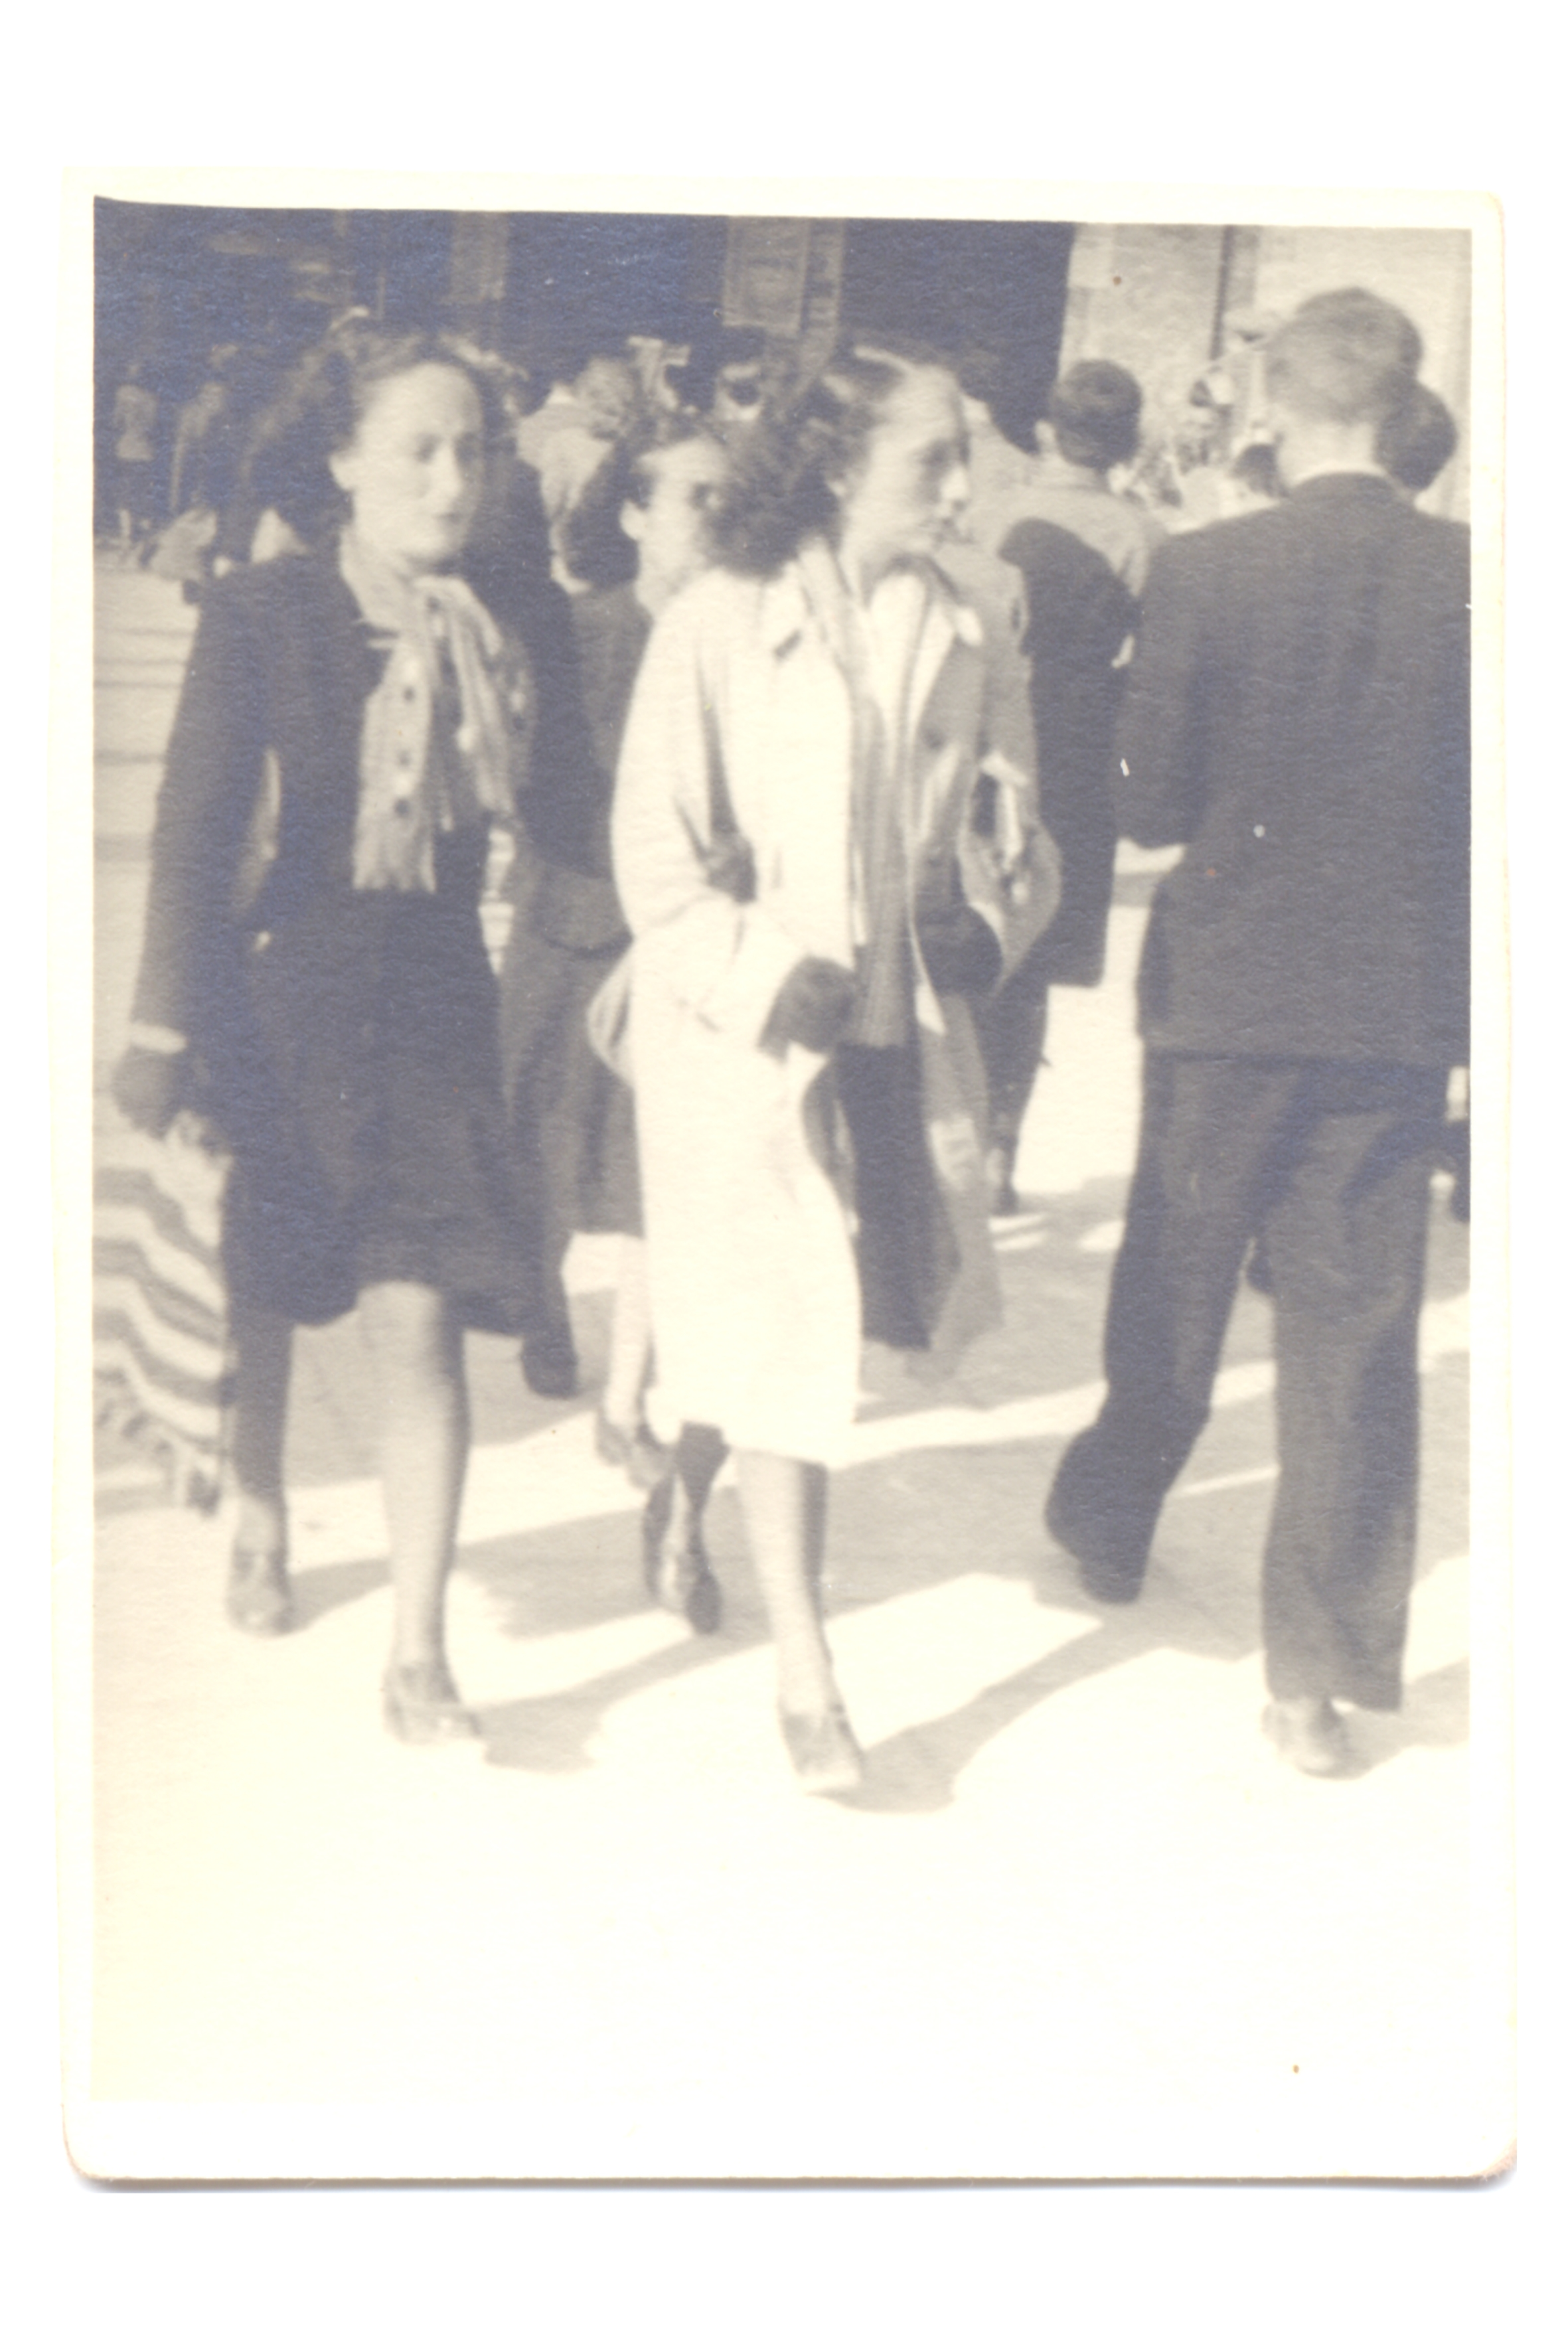 Eda Saporta and Matilde Dzivre right after the war